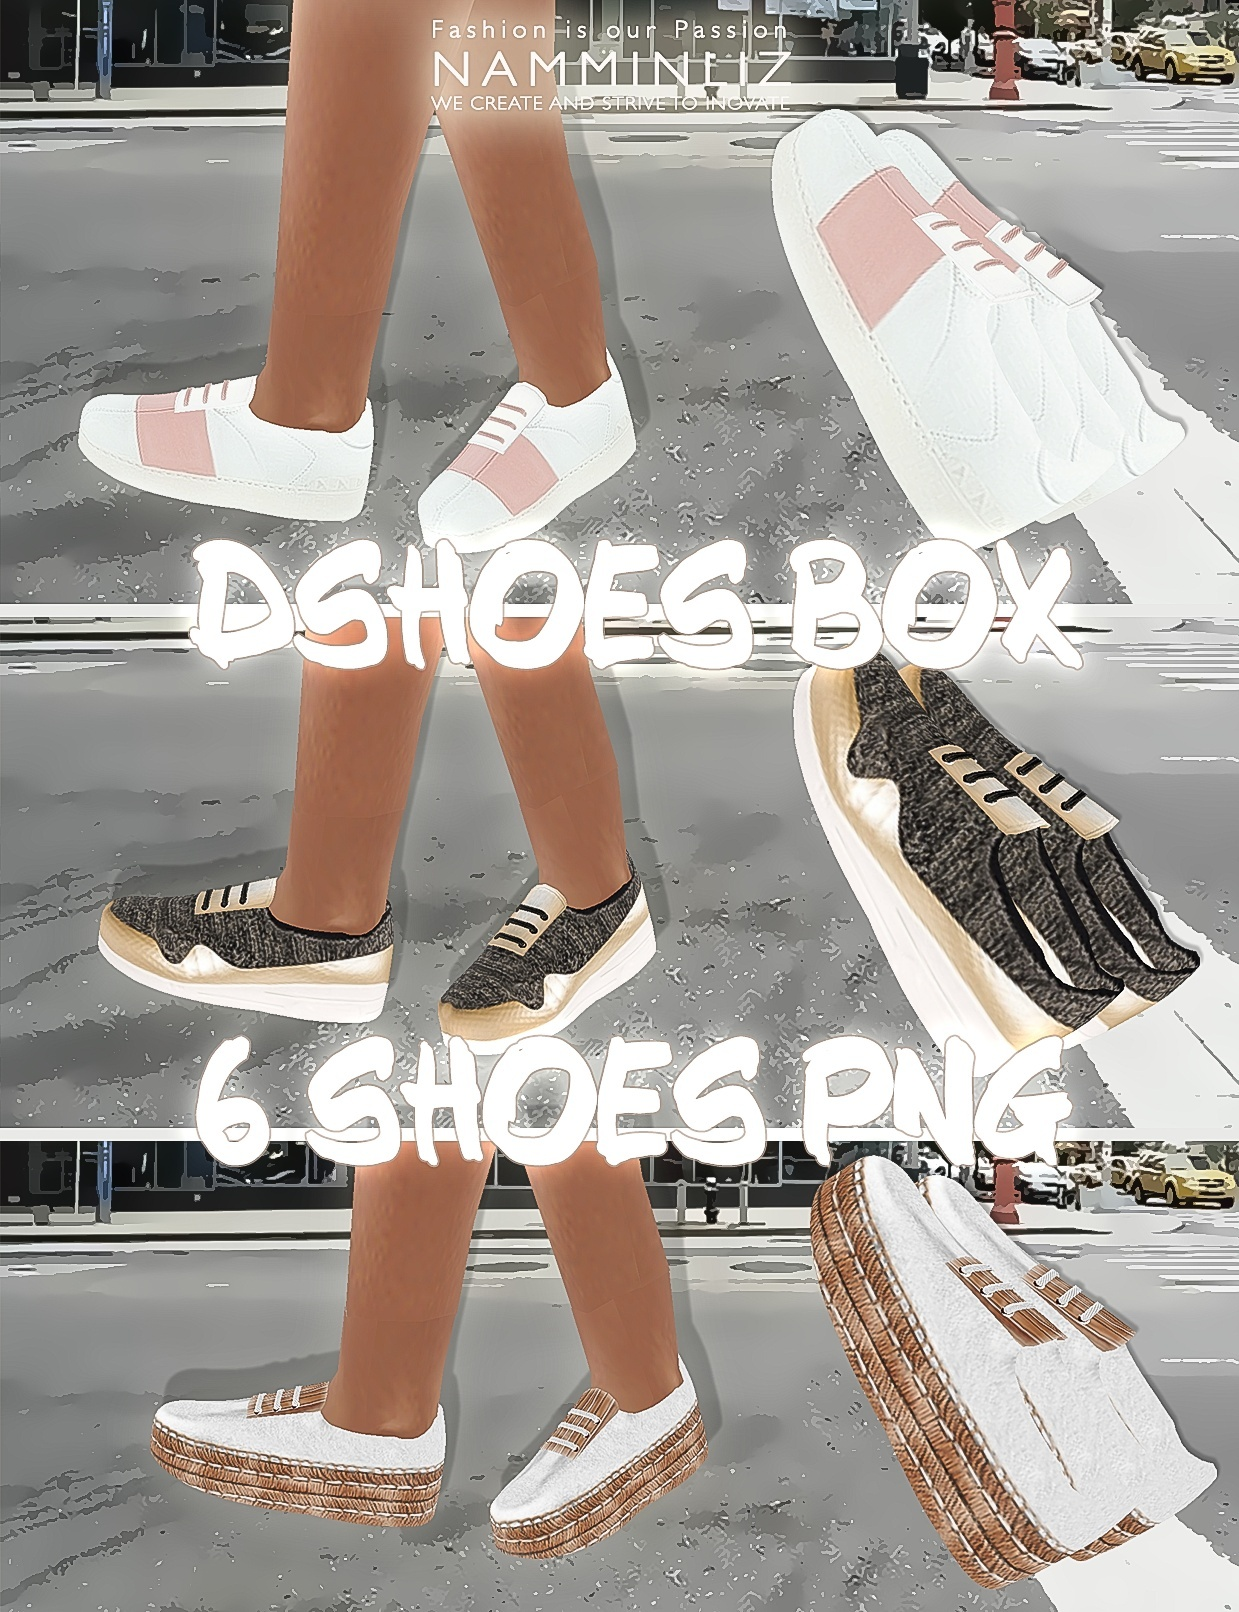 DshoesBox imvu 6 shoes PNG CHKN